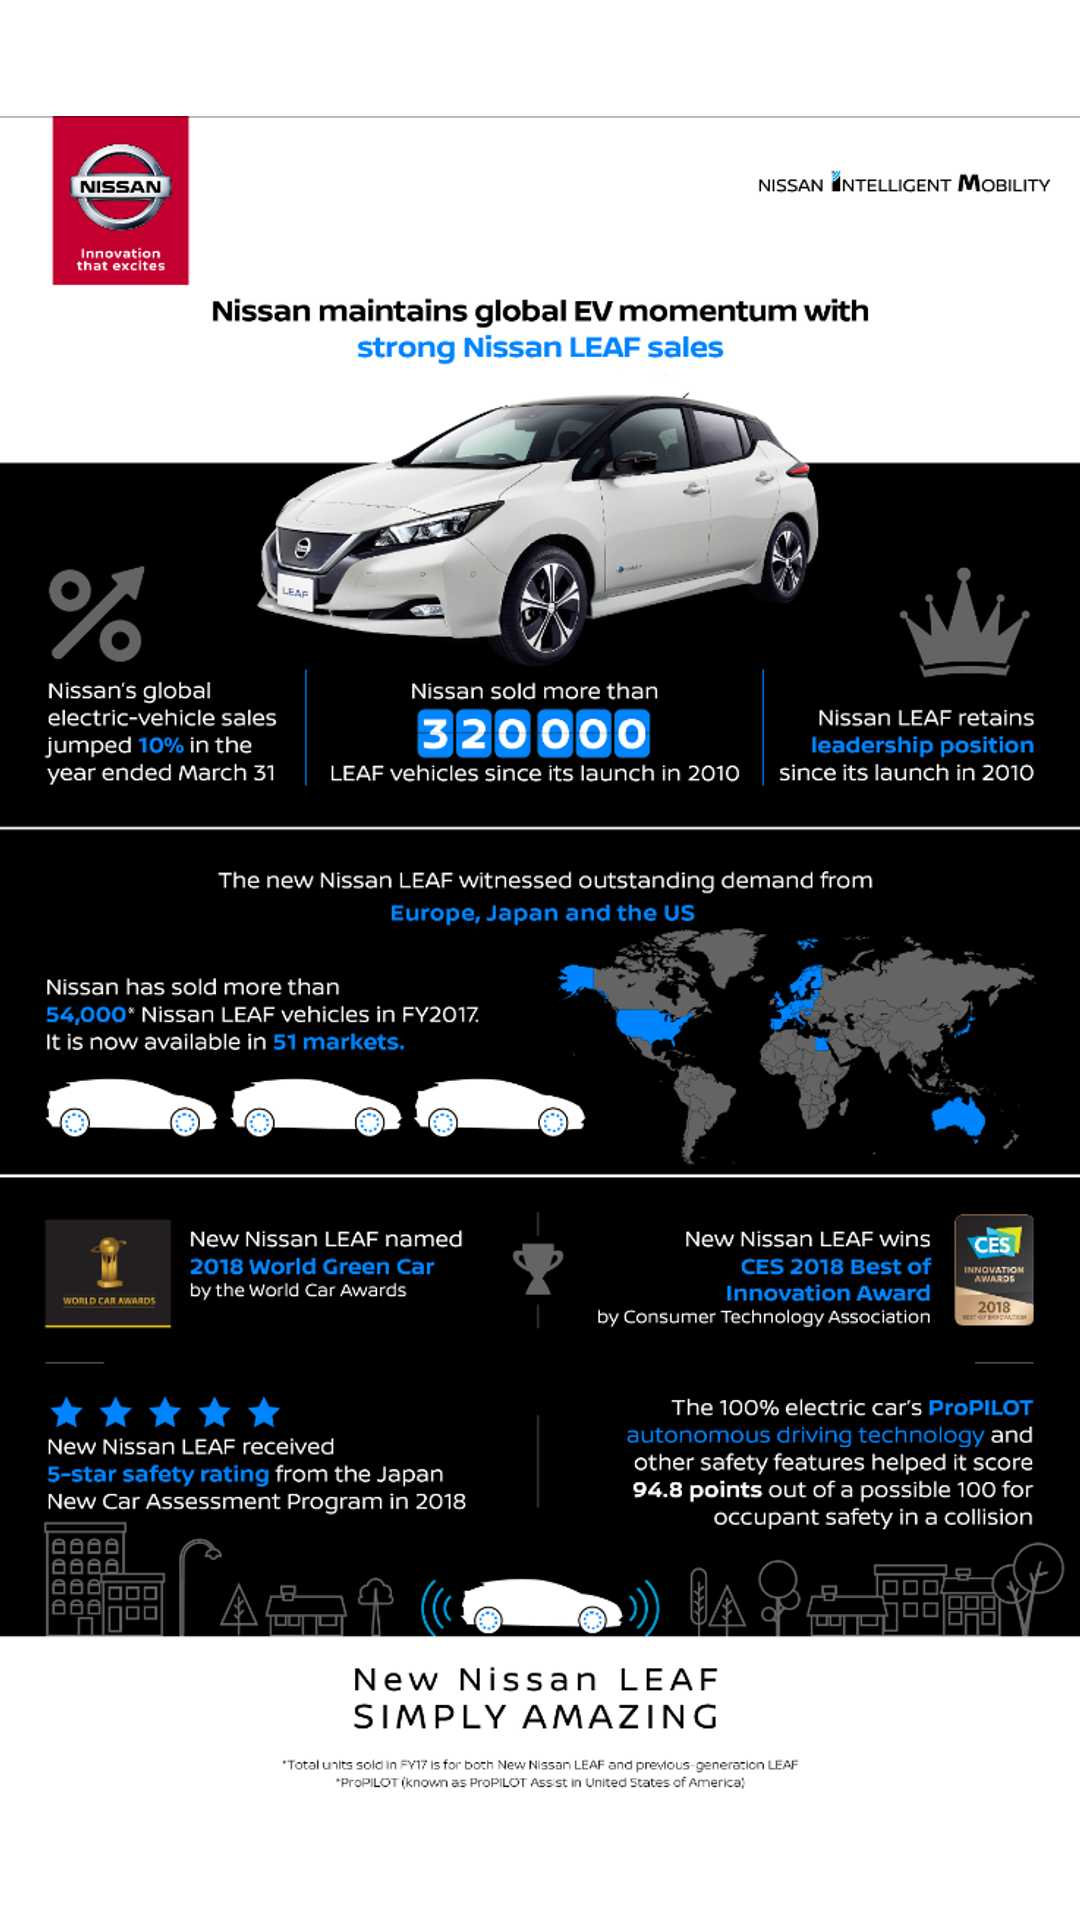 Nissan LEAF Sales In Past 12-Months (FY2017) Hit 54,451